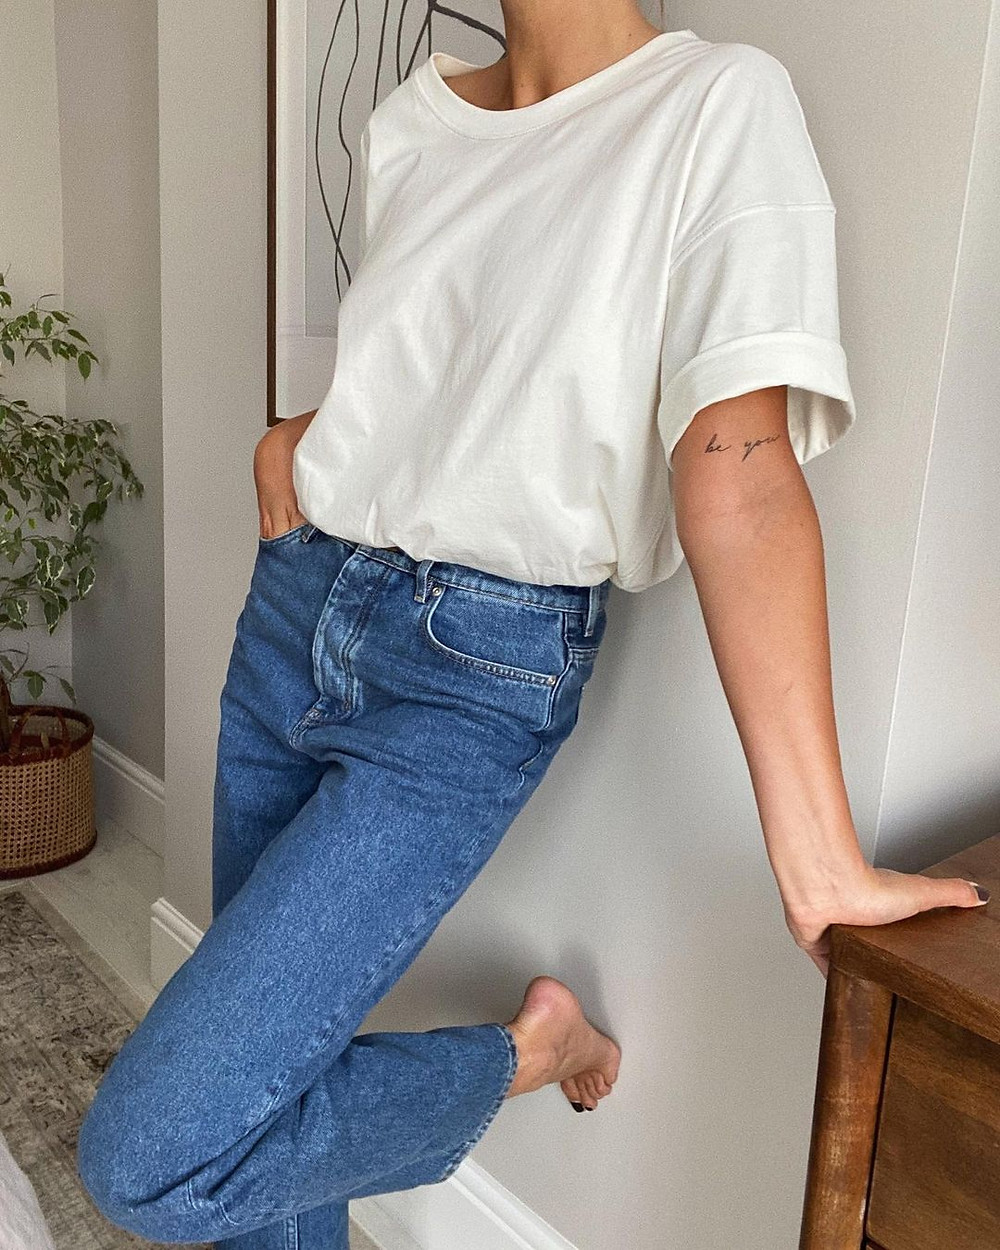 emma hill wears white t-shirt and high waisted blue jeans